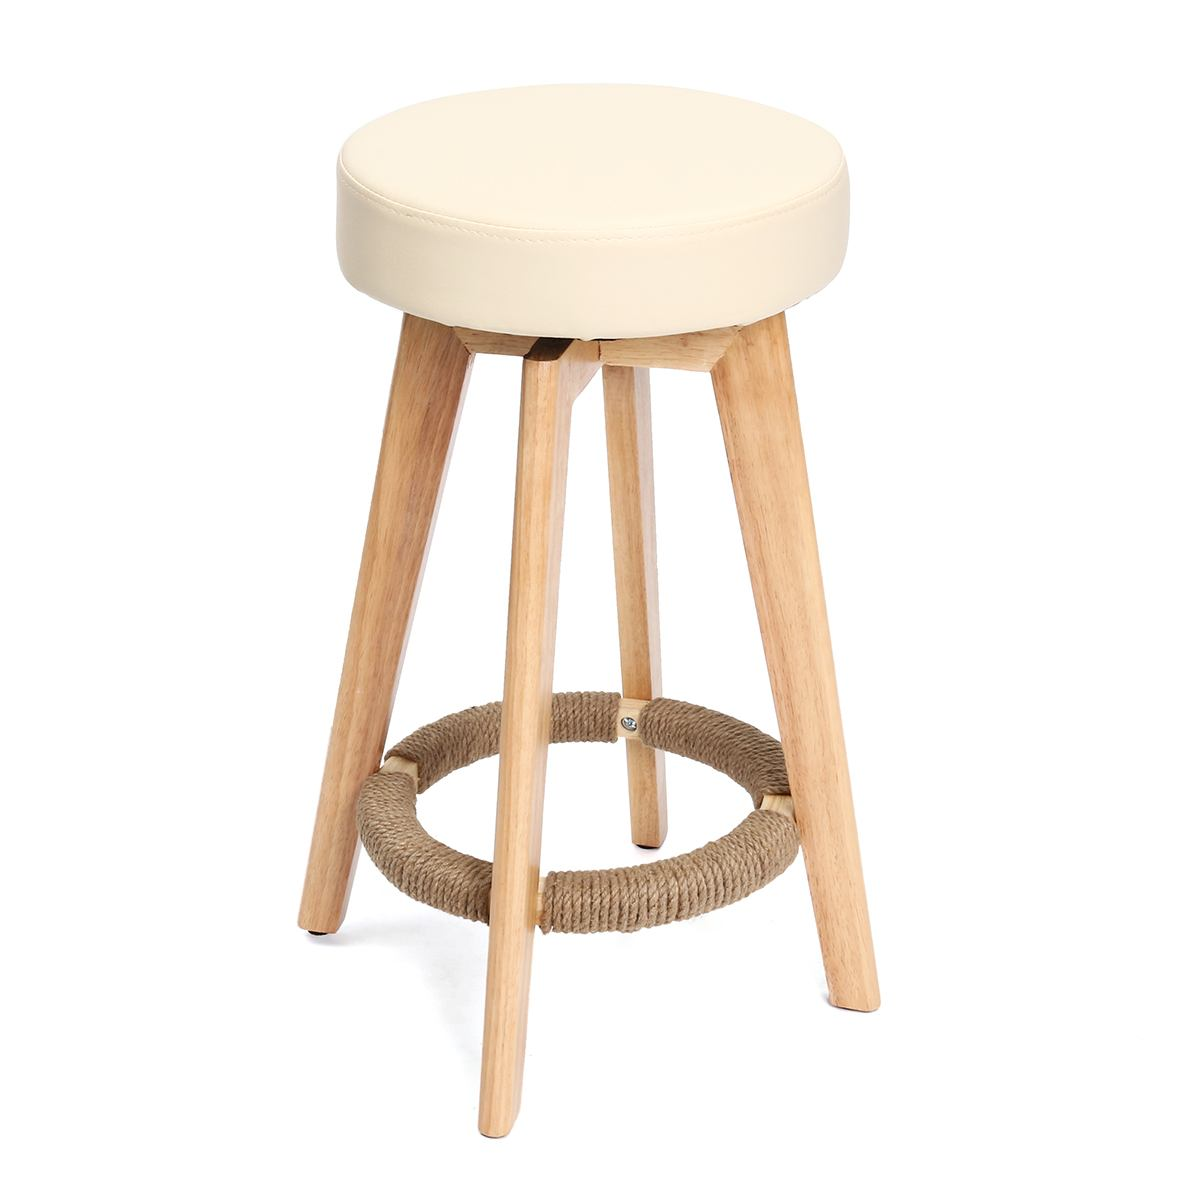 65cm Vintage Bar Stool Wooden Dinning Chair PU Leather Counter Seat Kitchen Dining Chair Home Pub Bar Furniture 3 Colors